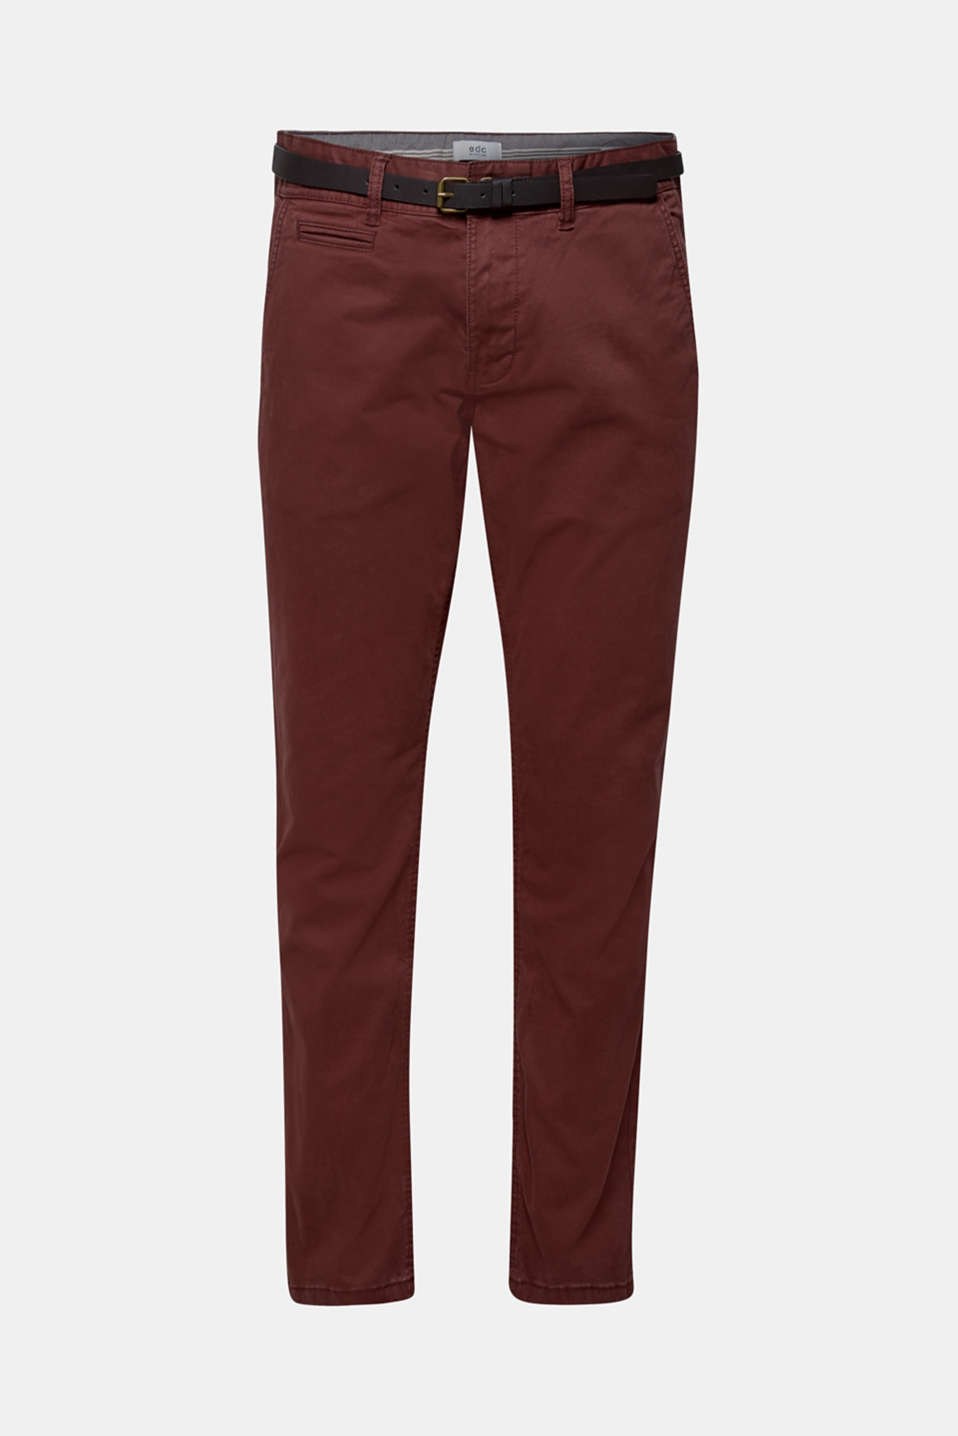 Trousers with a belt, stretch cotton, BORDEAUX RED, detail image number 5